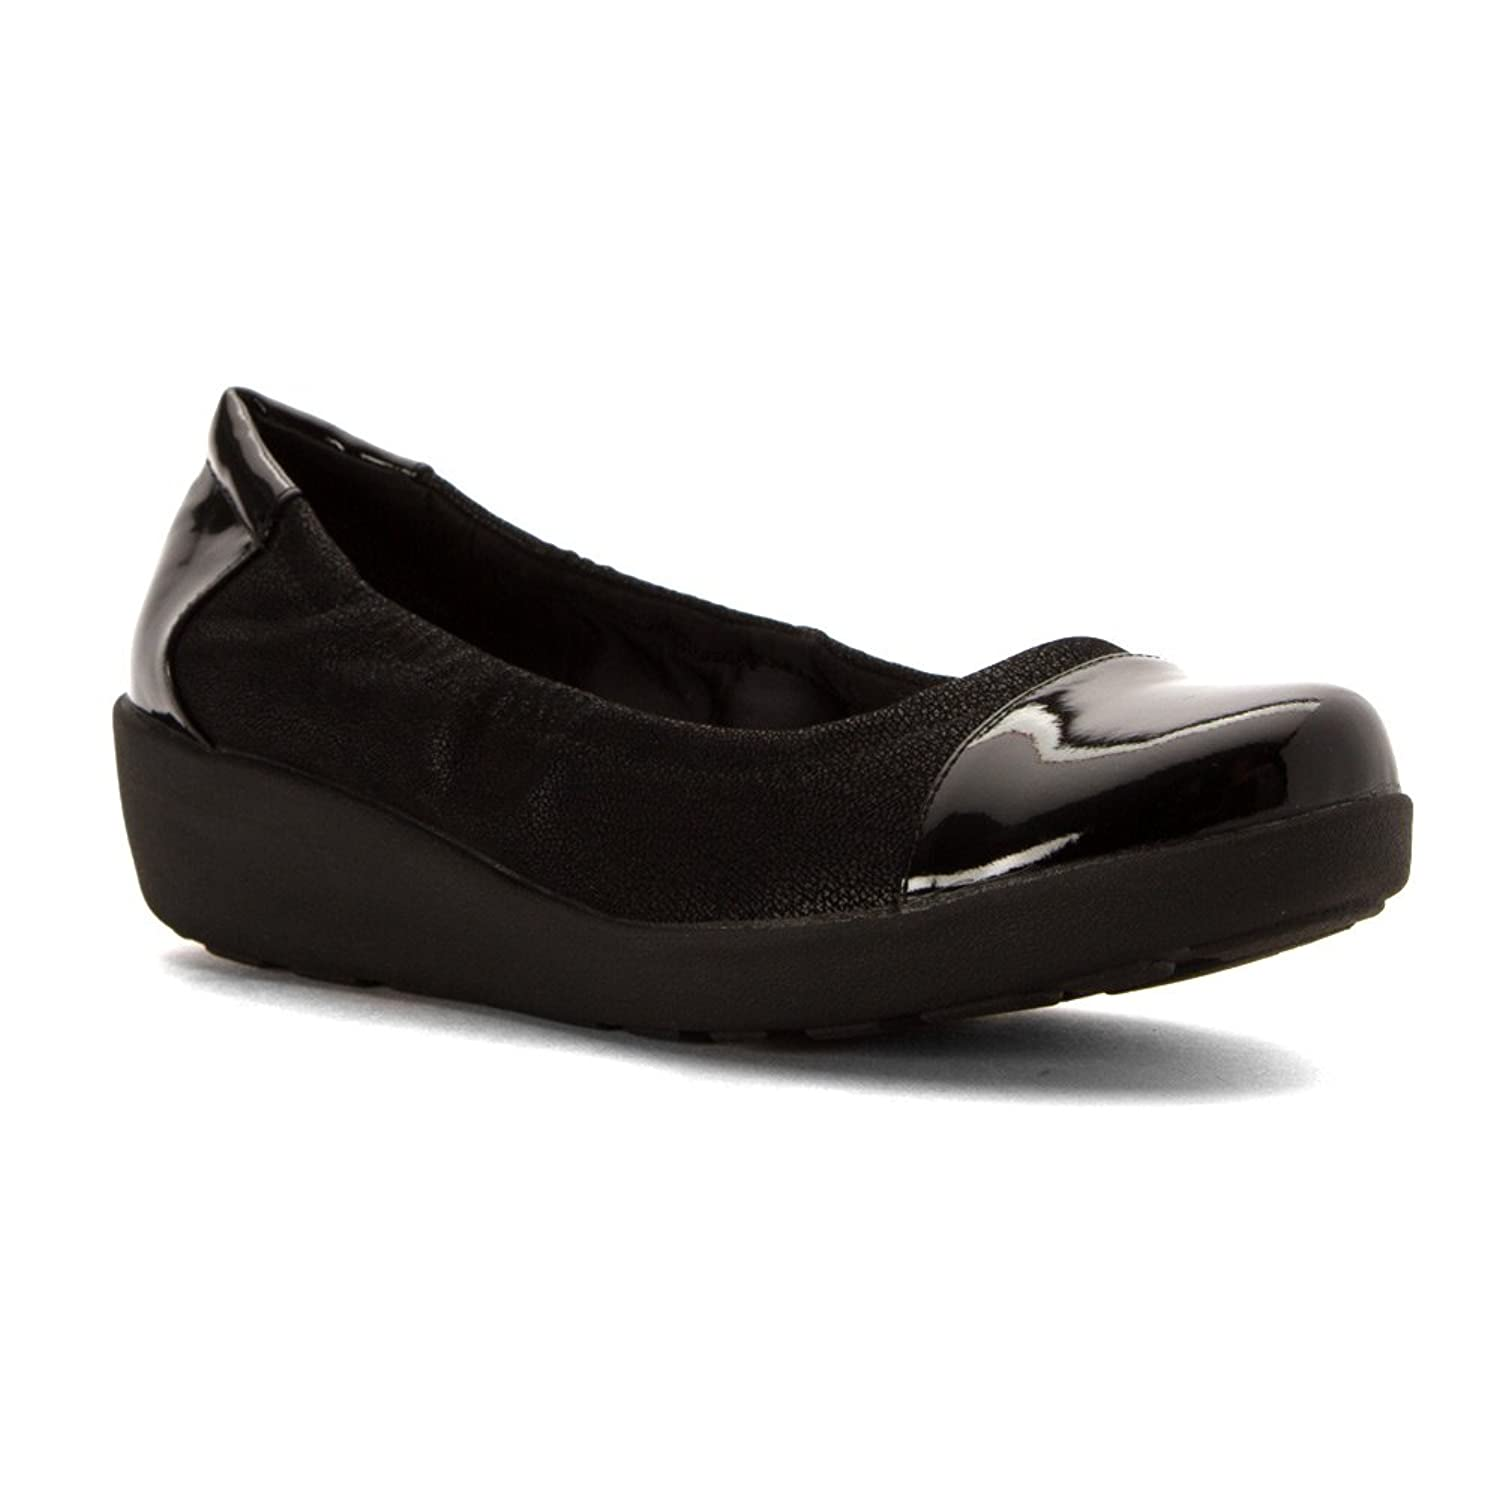 88d483ef48a Easy Spirit Women s Kable Loafers Shoes 80%OFF - asianaroma.ee